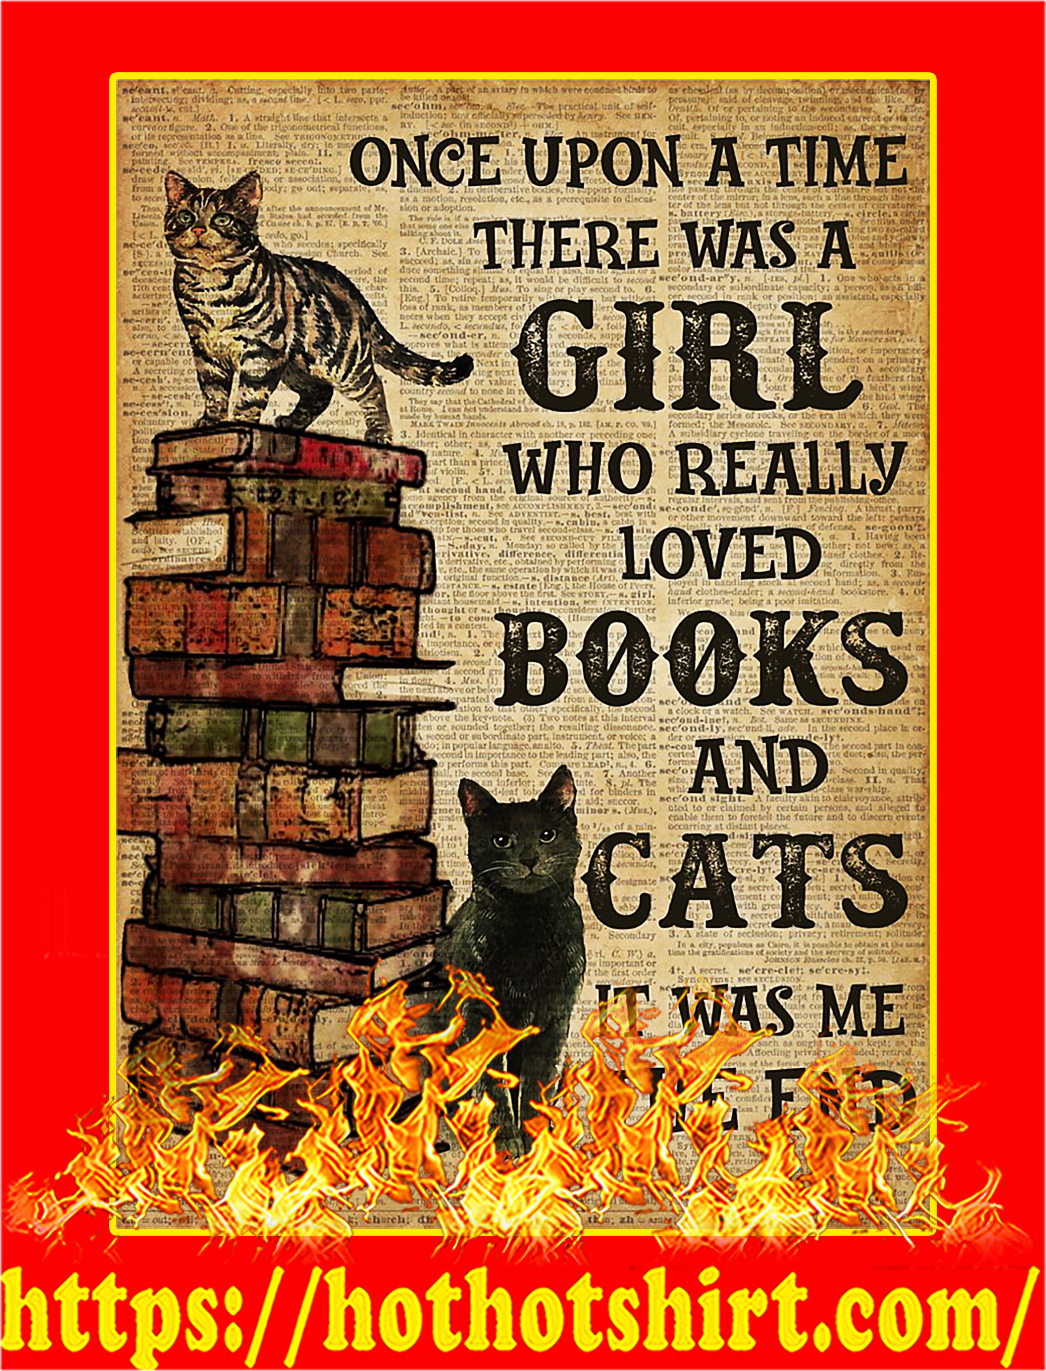 Once Upon A Time There Was A Girl Loved Books And Cats Poster - A4